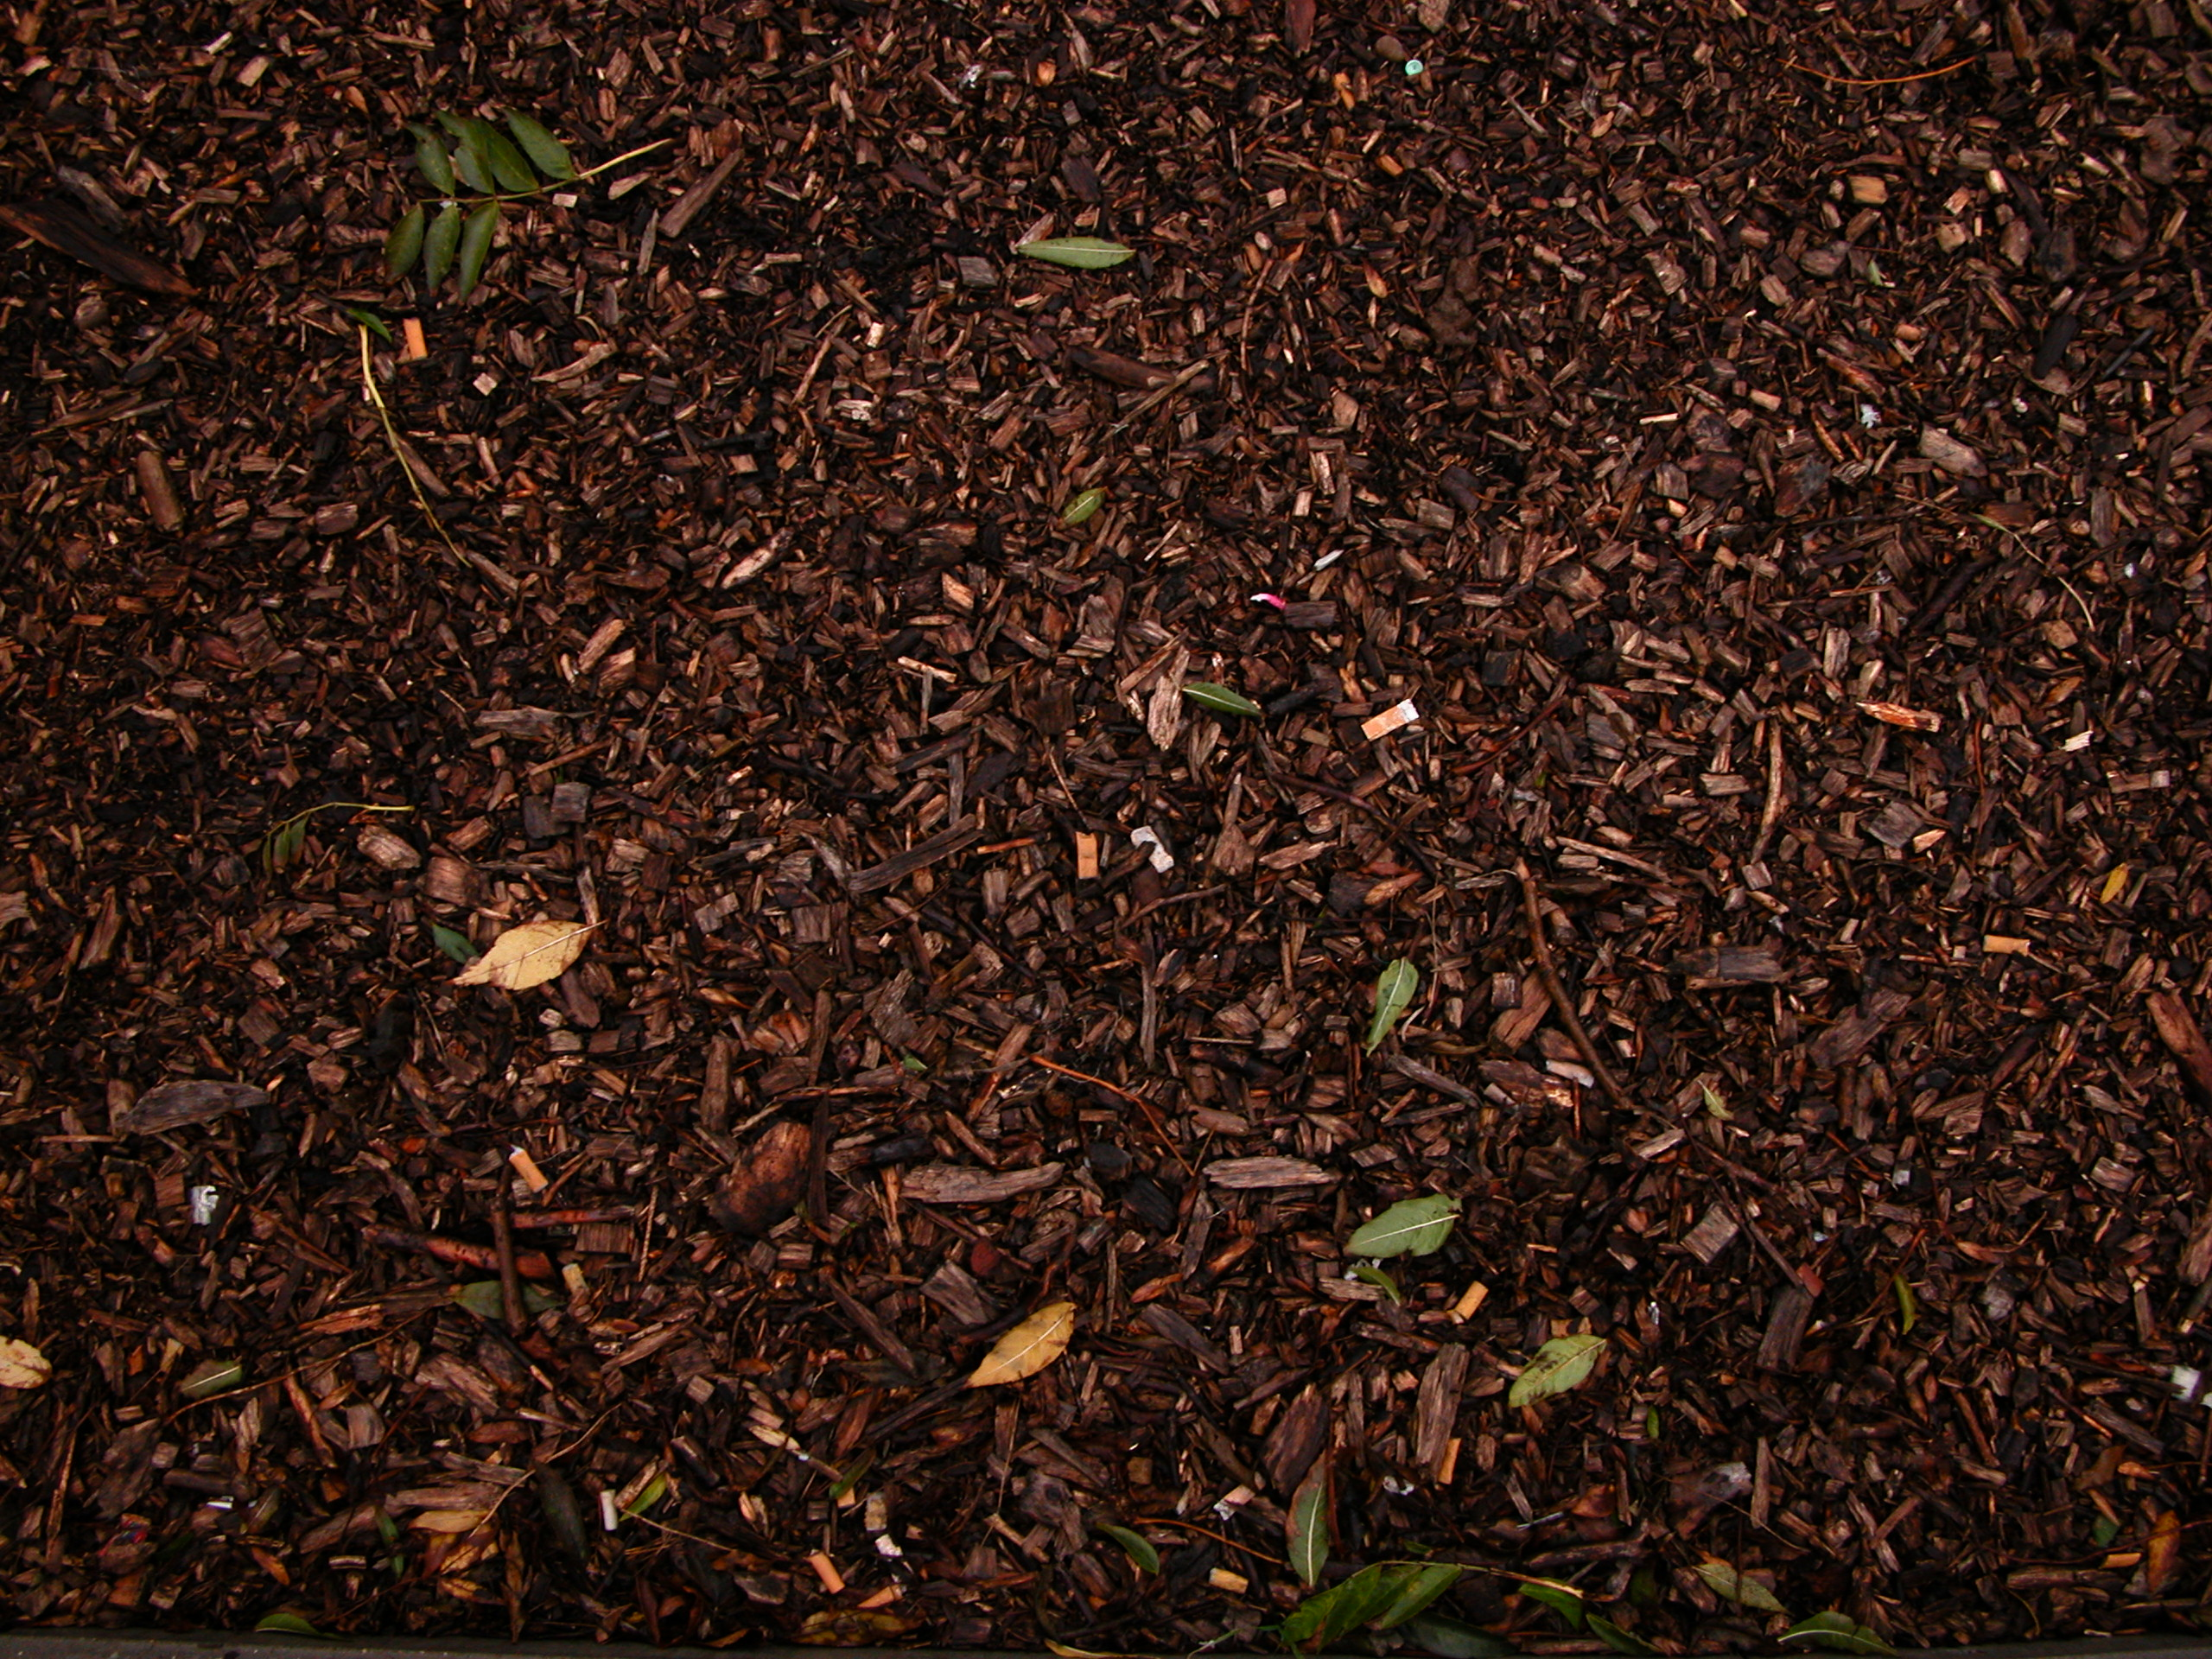 French country gardens - Thermophilic Composting Of Human Manure In Pennsylvania